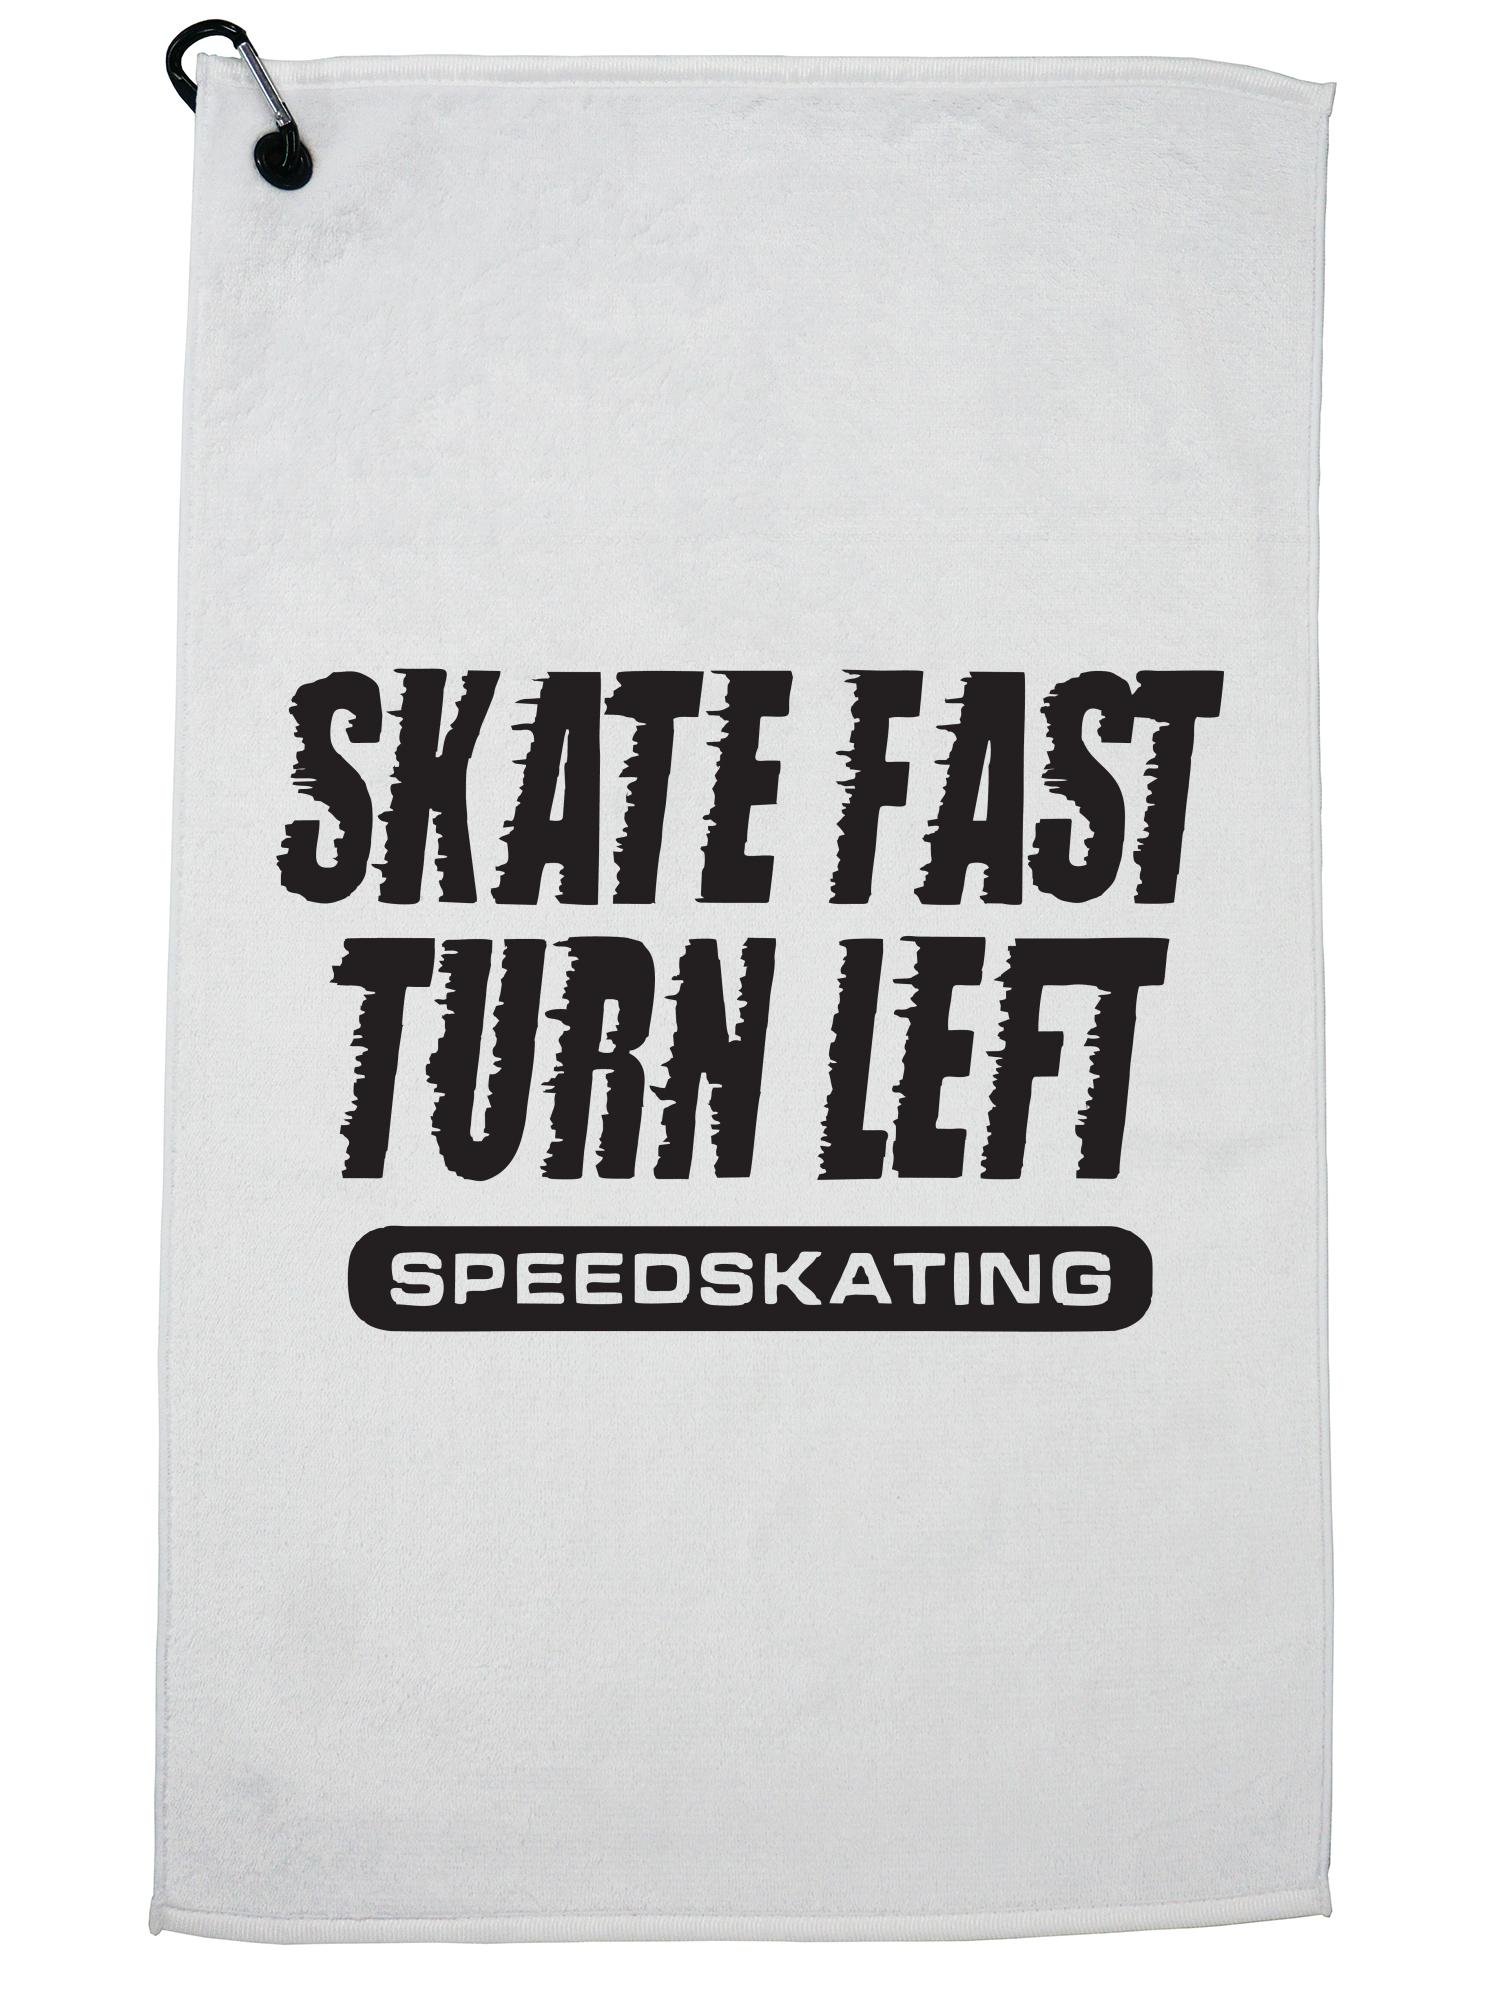 Speed Skating Skate Fast Turn Left Speedskating Golf Towel with Carabiner Clip by Hollywood Thread